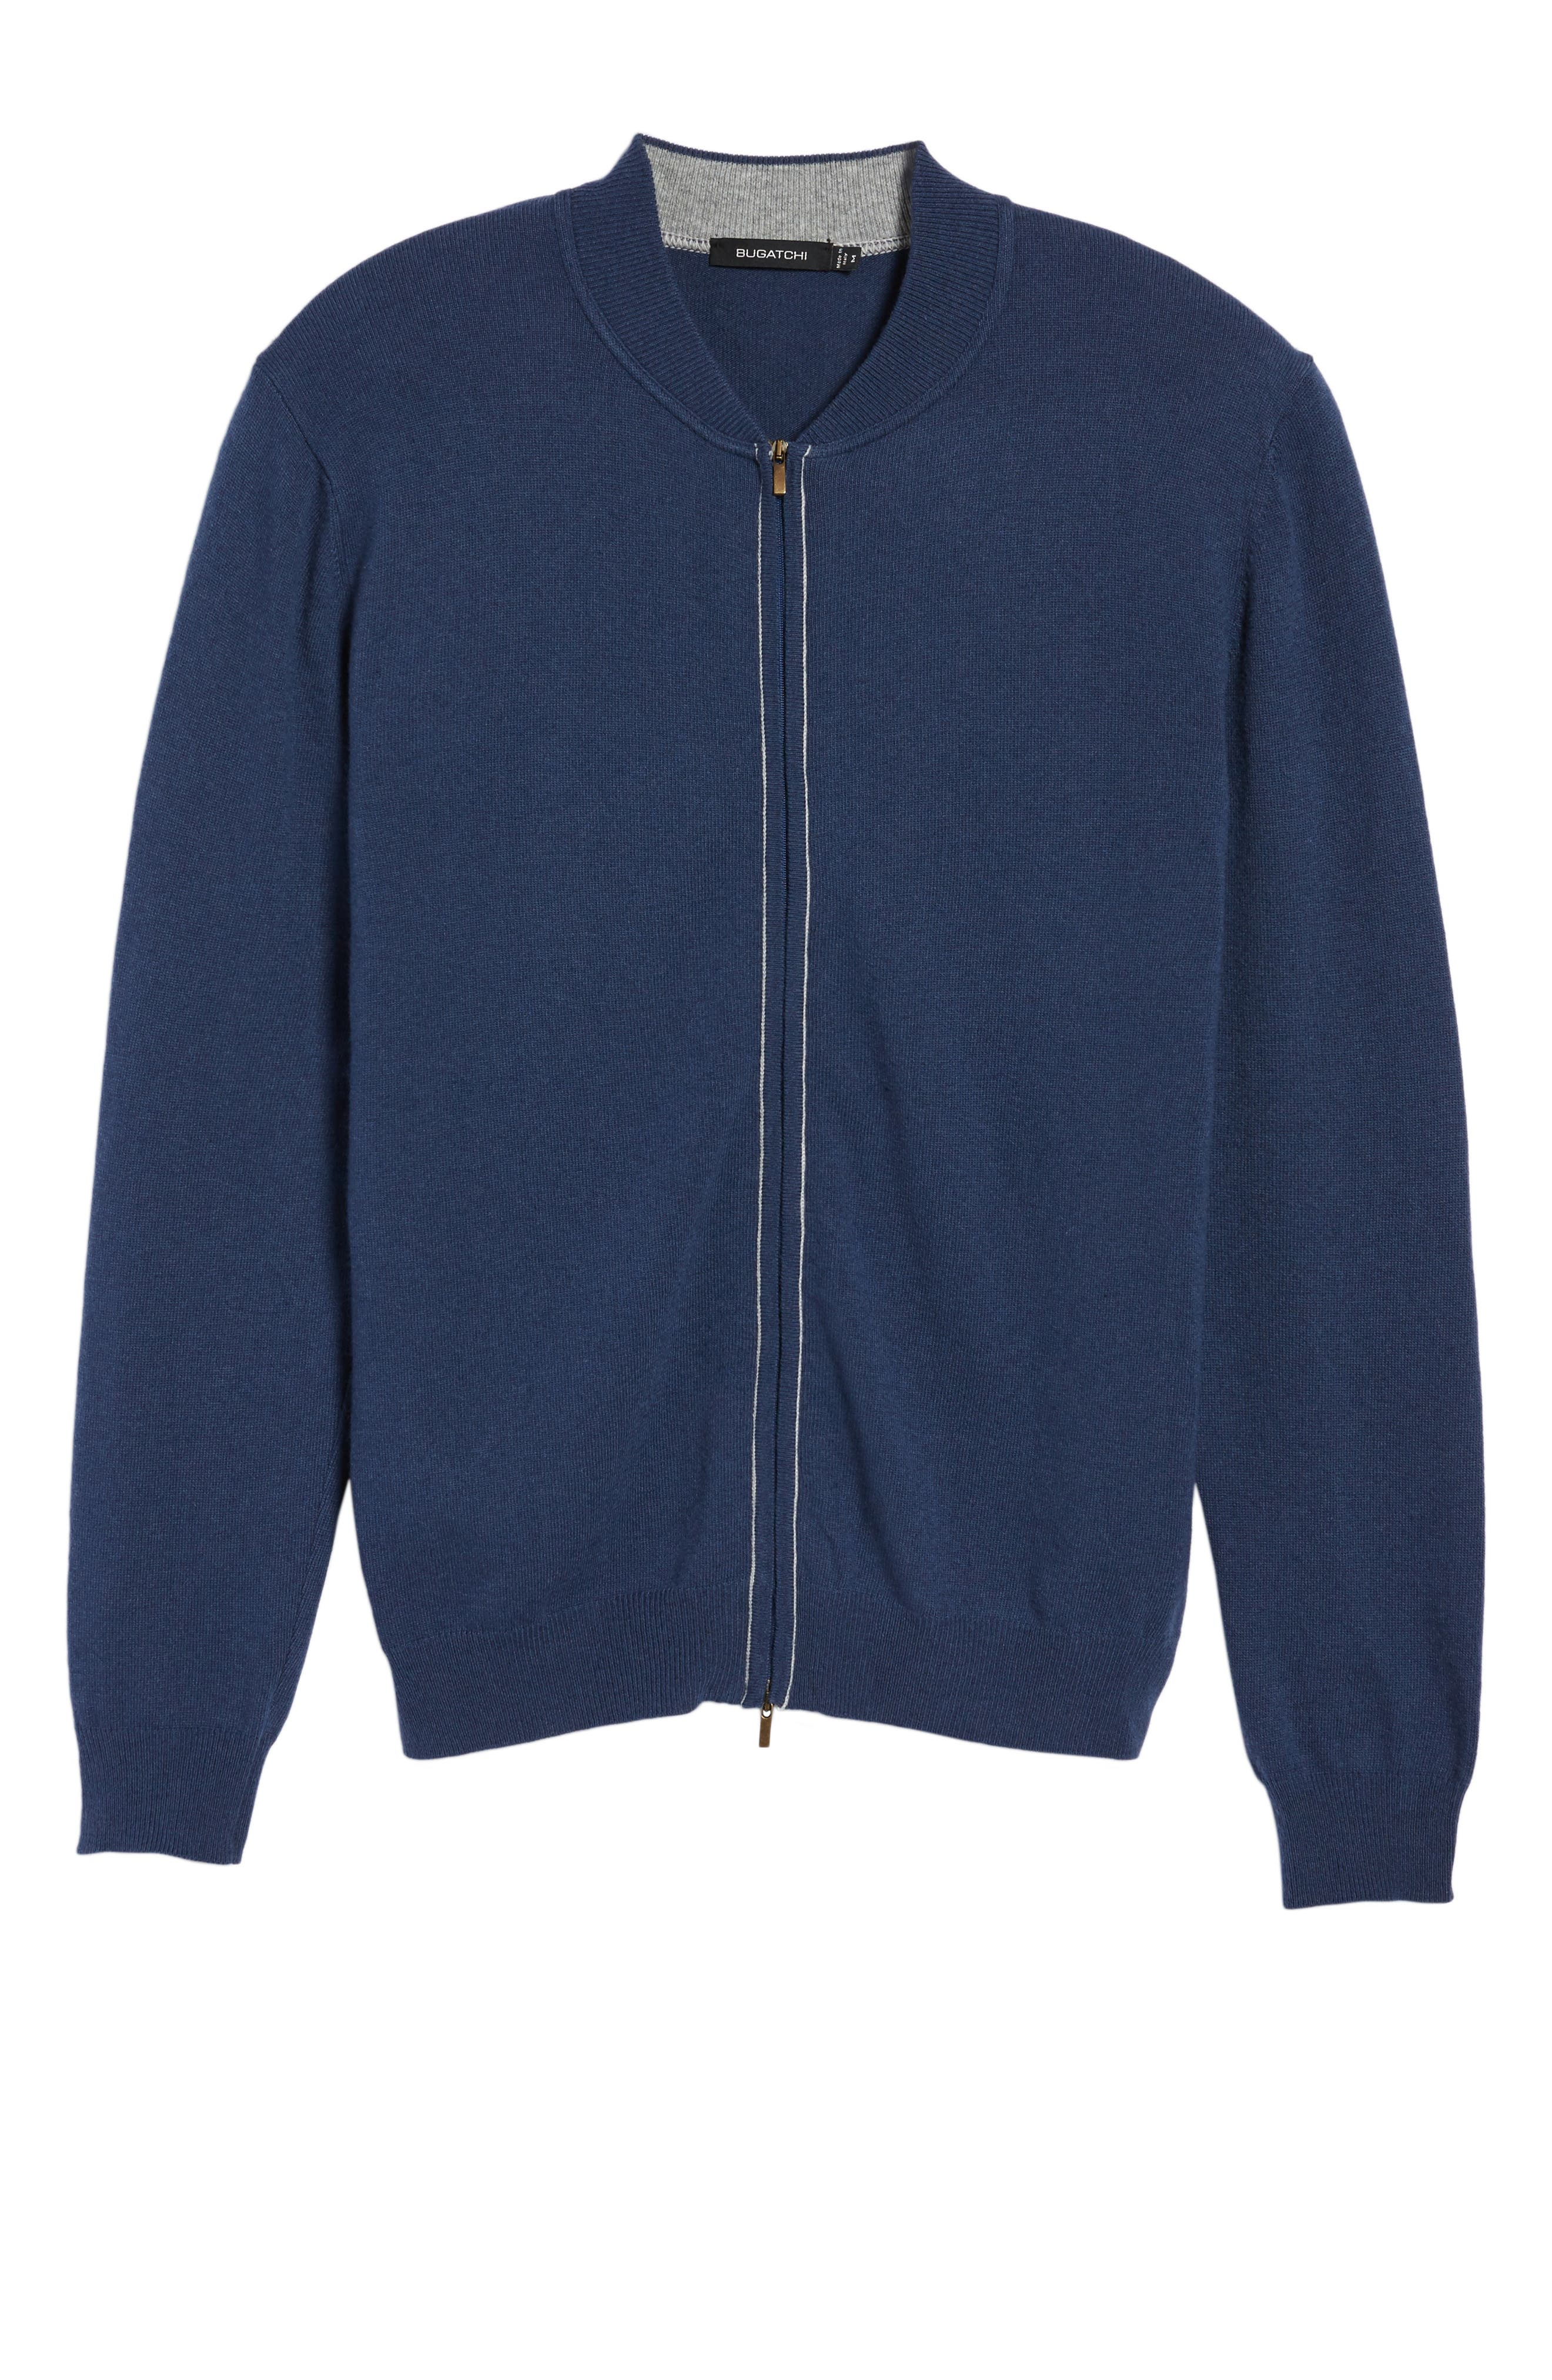 Zip Sweater,                             Alternate thumbnail 6, color,                             Classic Blue